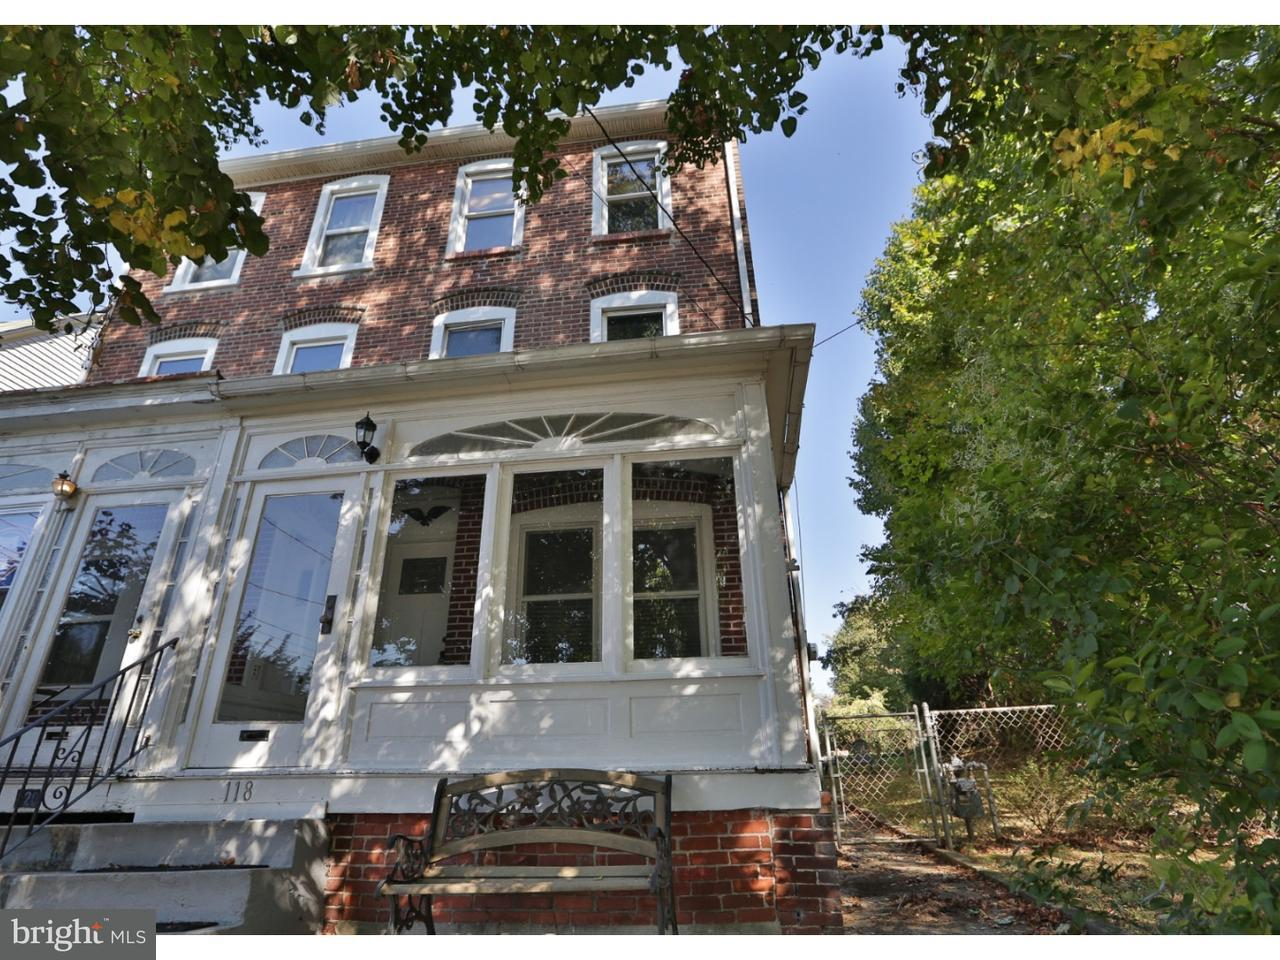 Townhouse for Sale at 118 W 7TH Avenue Conshohocken, Pennsylvania 19428 United States